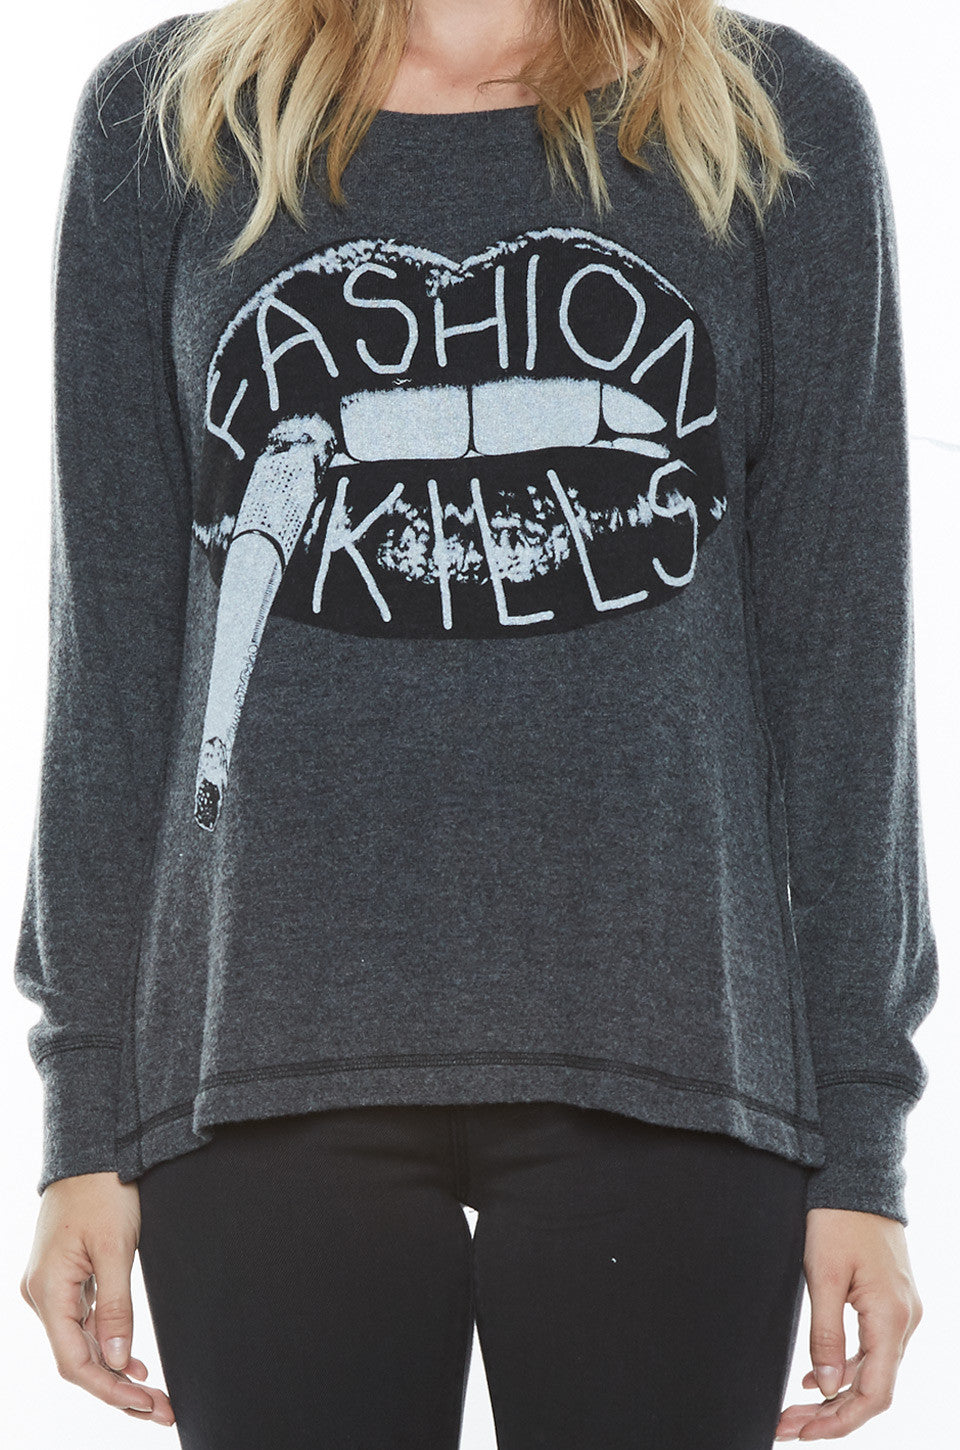 Amor Fashion Kills L/S Pullover Sweater w/Slit - Lauren Moshi - 5